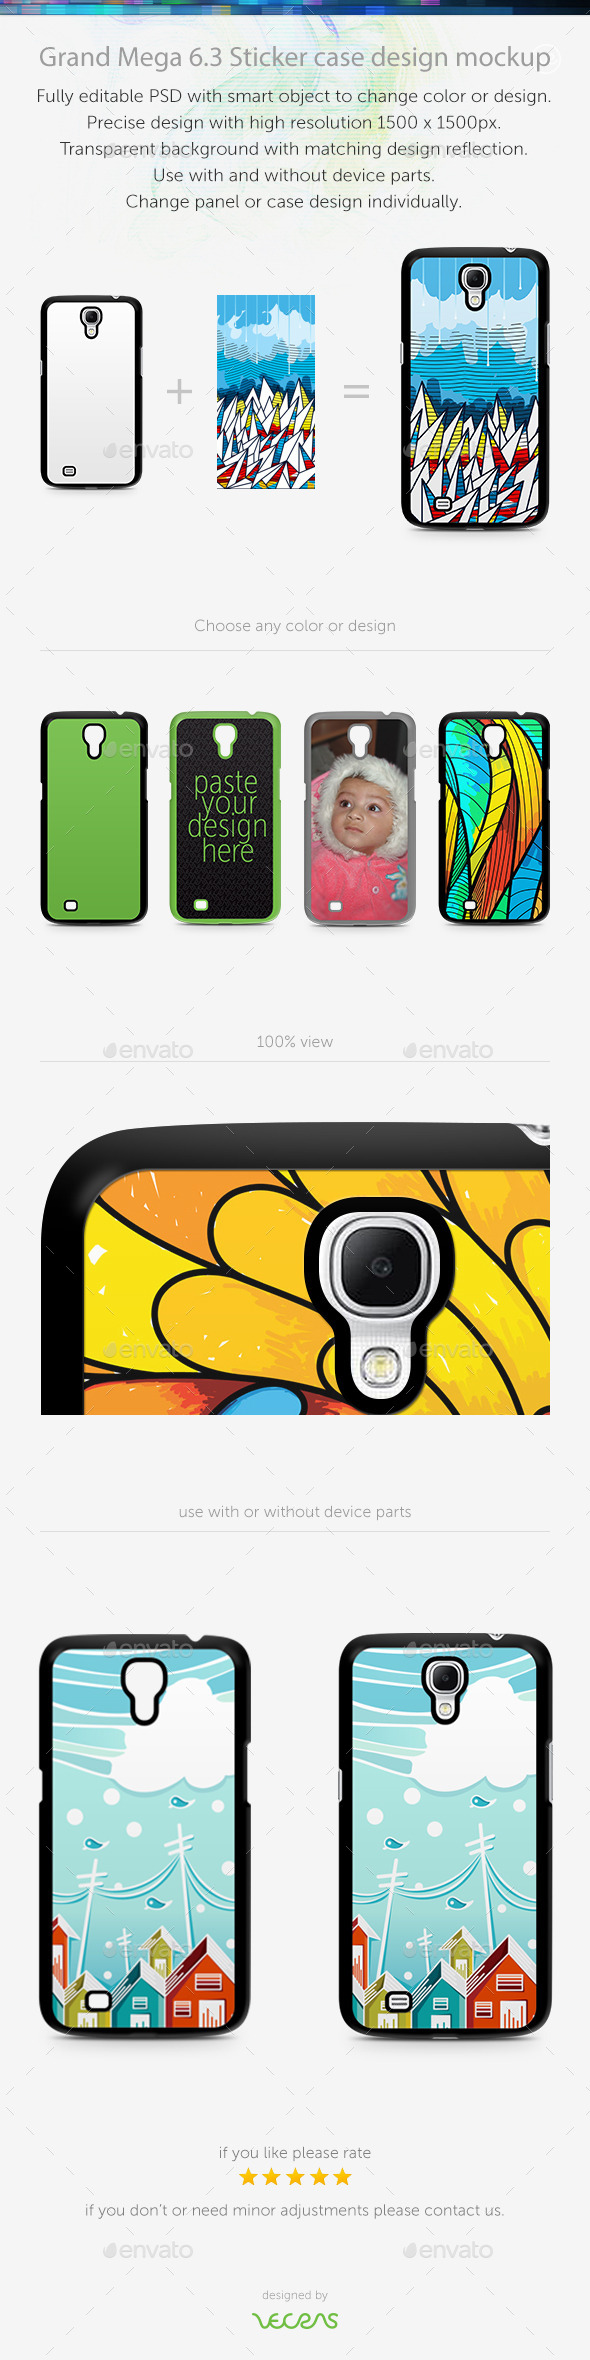 Grand Mega 6.3 Sticker Case Design Mockup - Mobile Displays